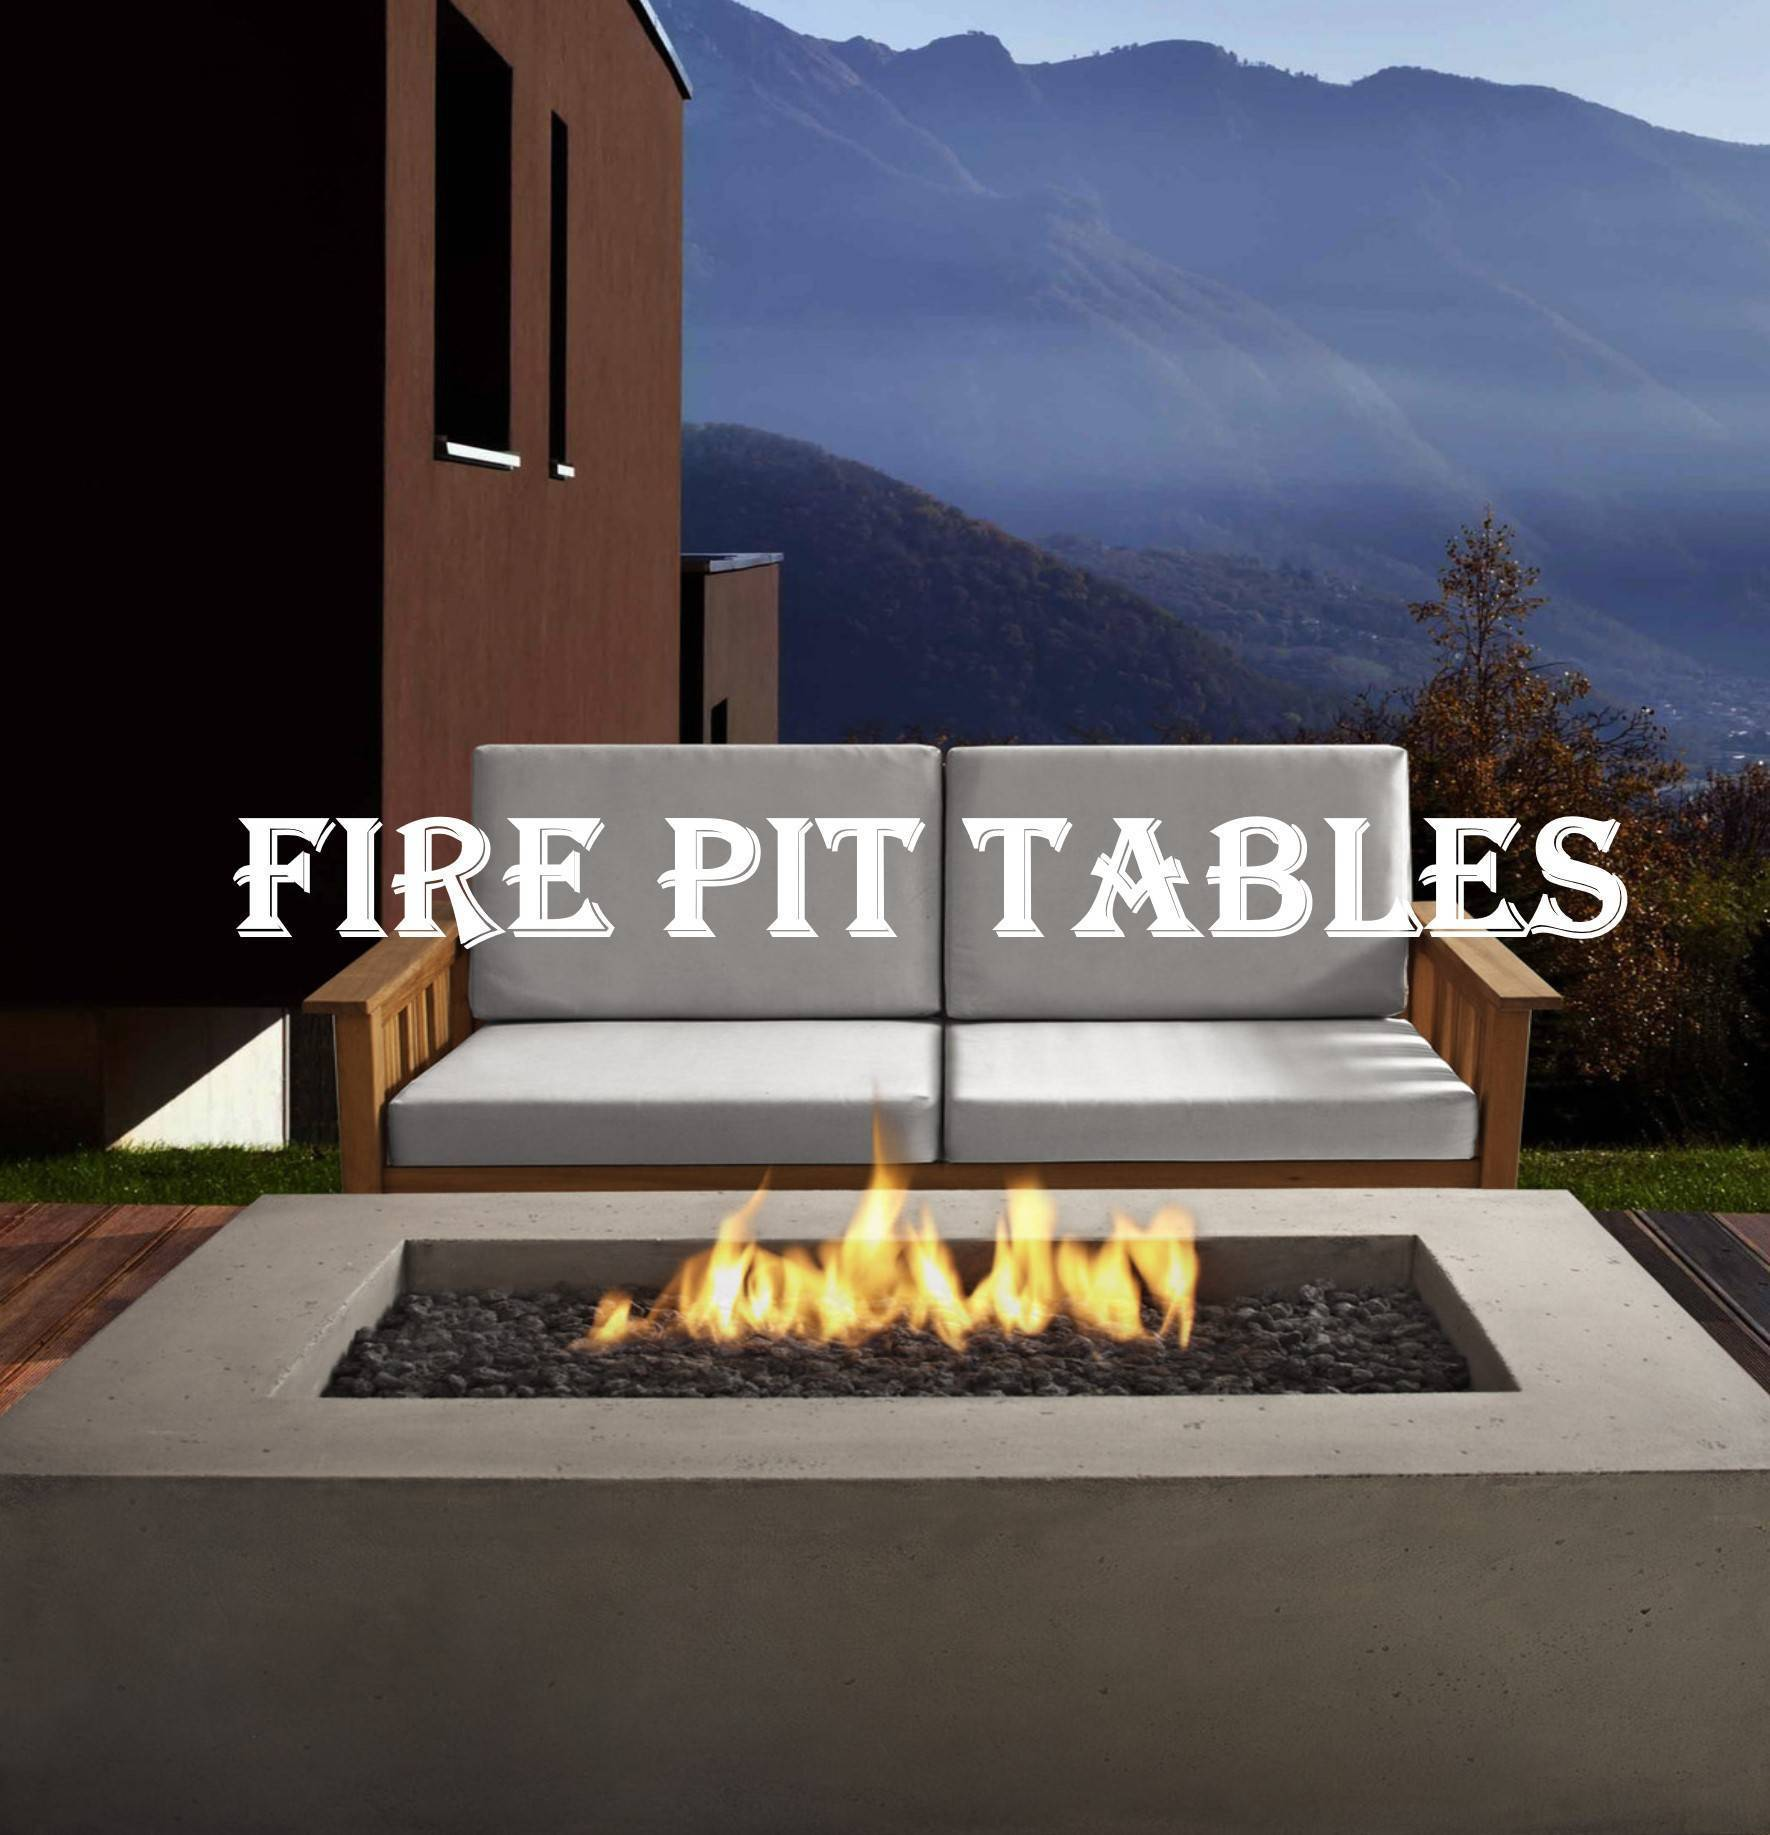 Fir Pit Tables